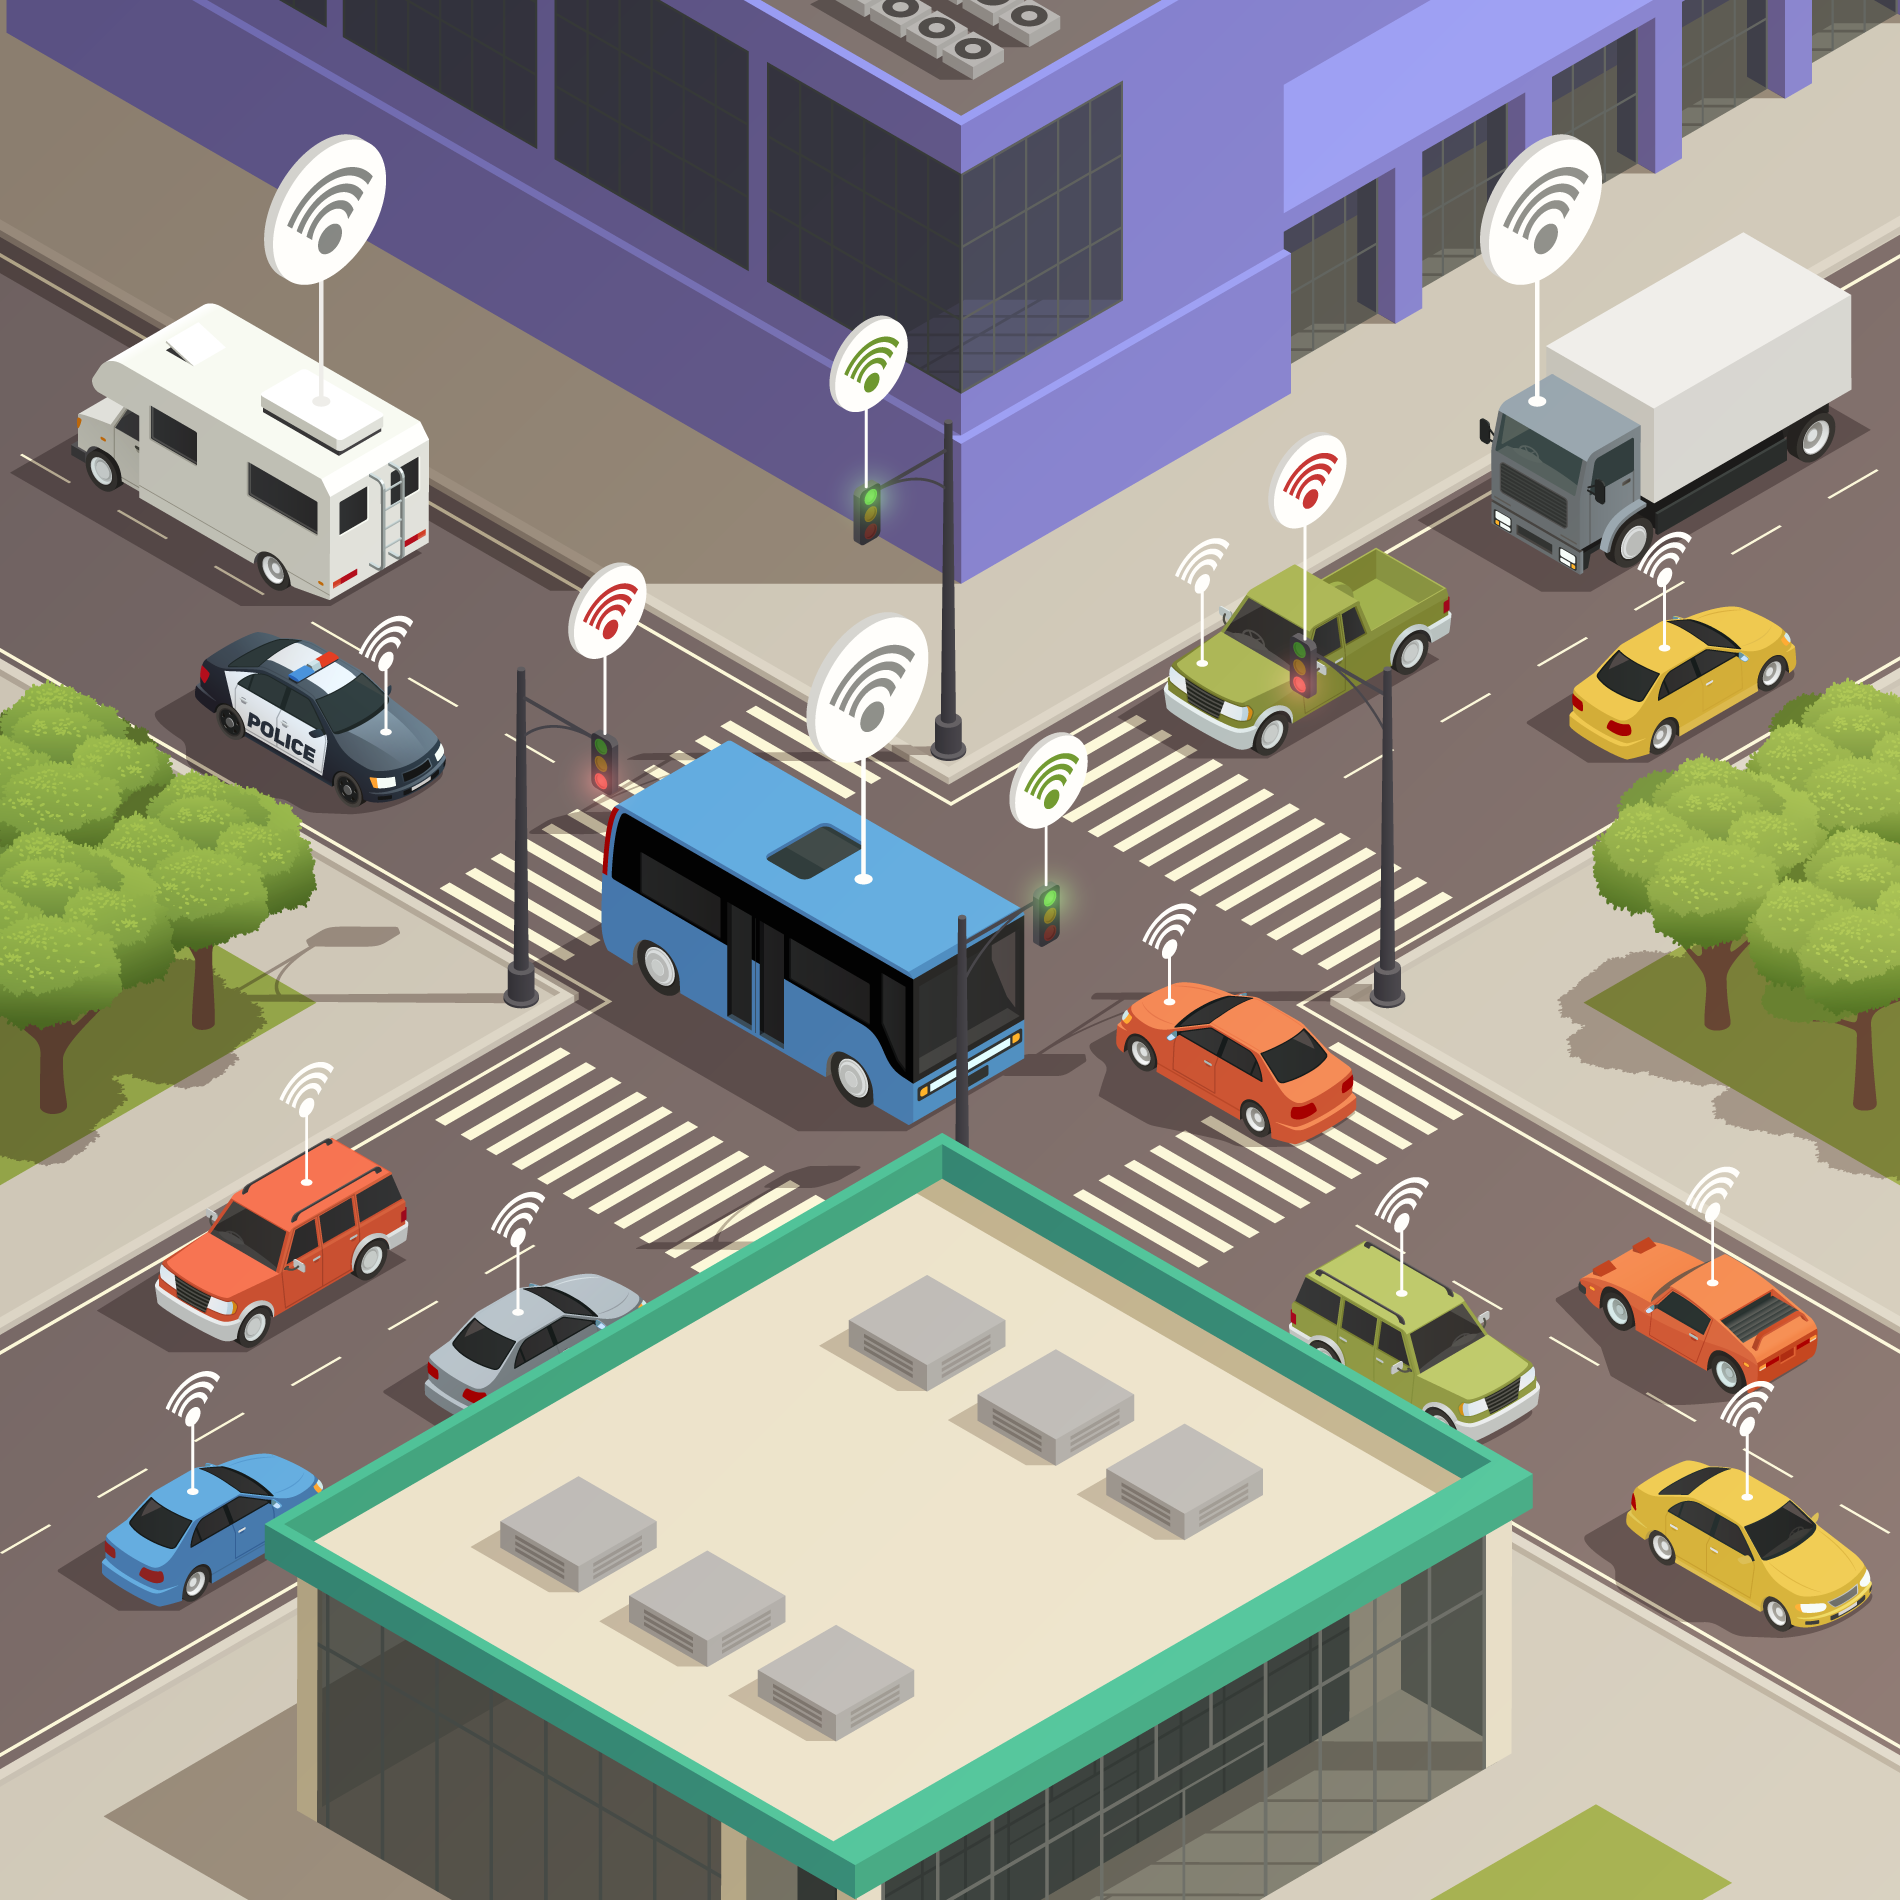 Illustration of a connected smart city